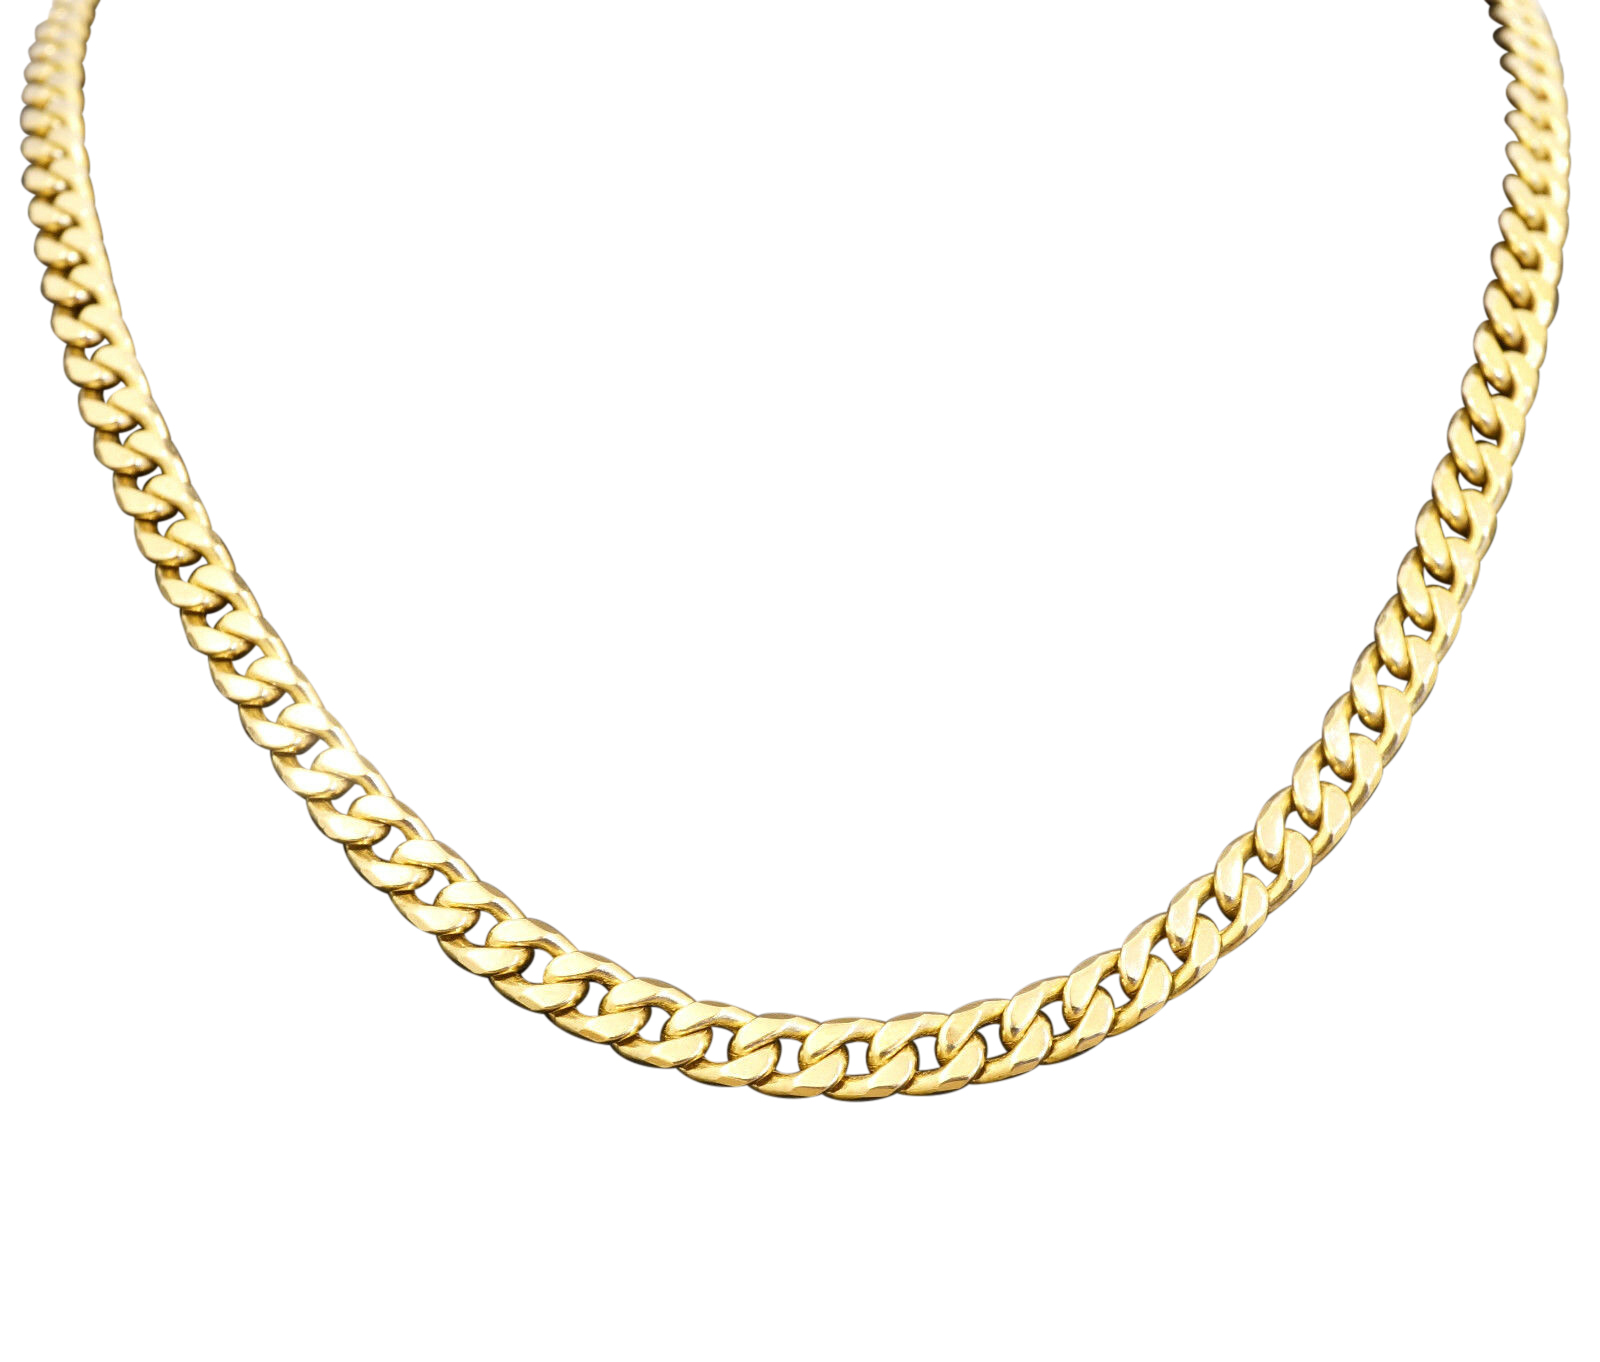 9carat yellow gold tight curb 20 quot necklace chain 5mm wide